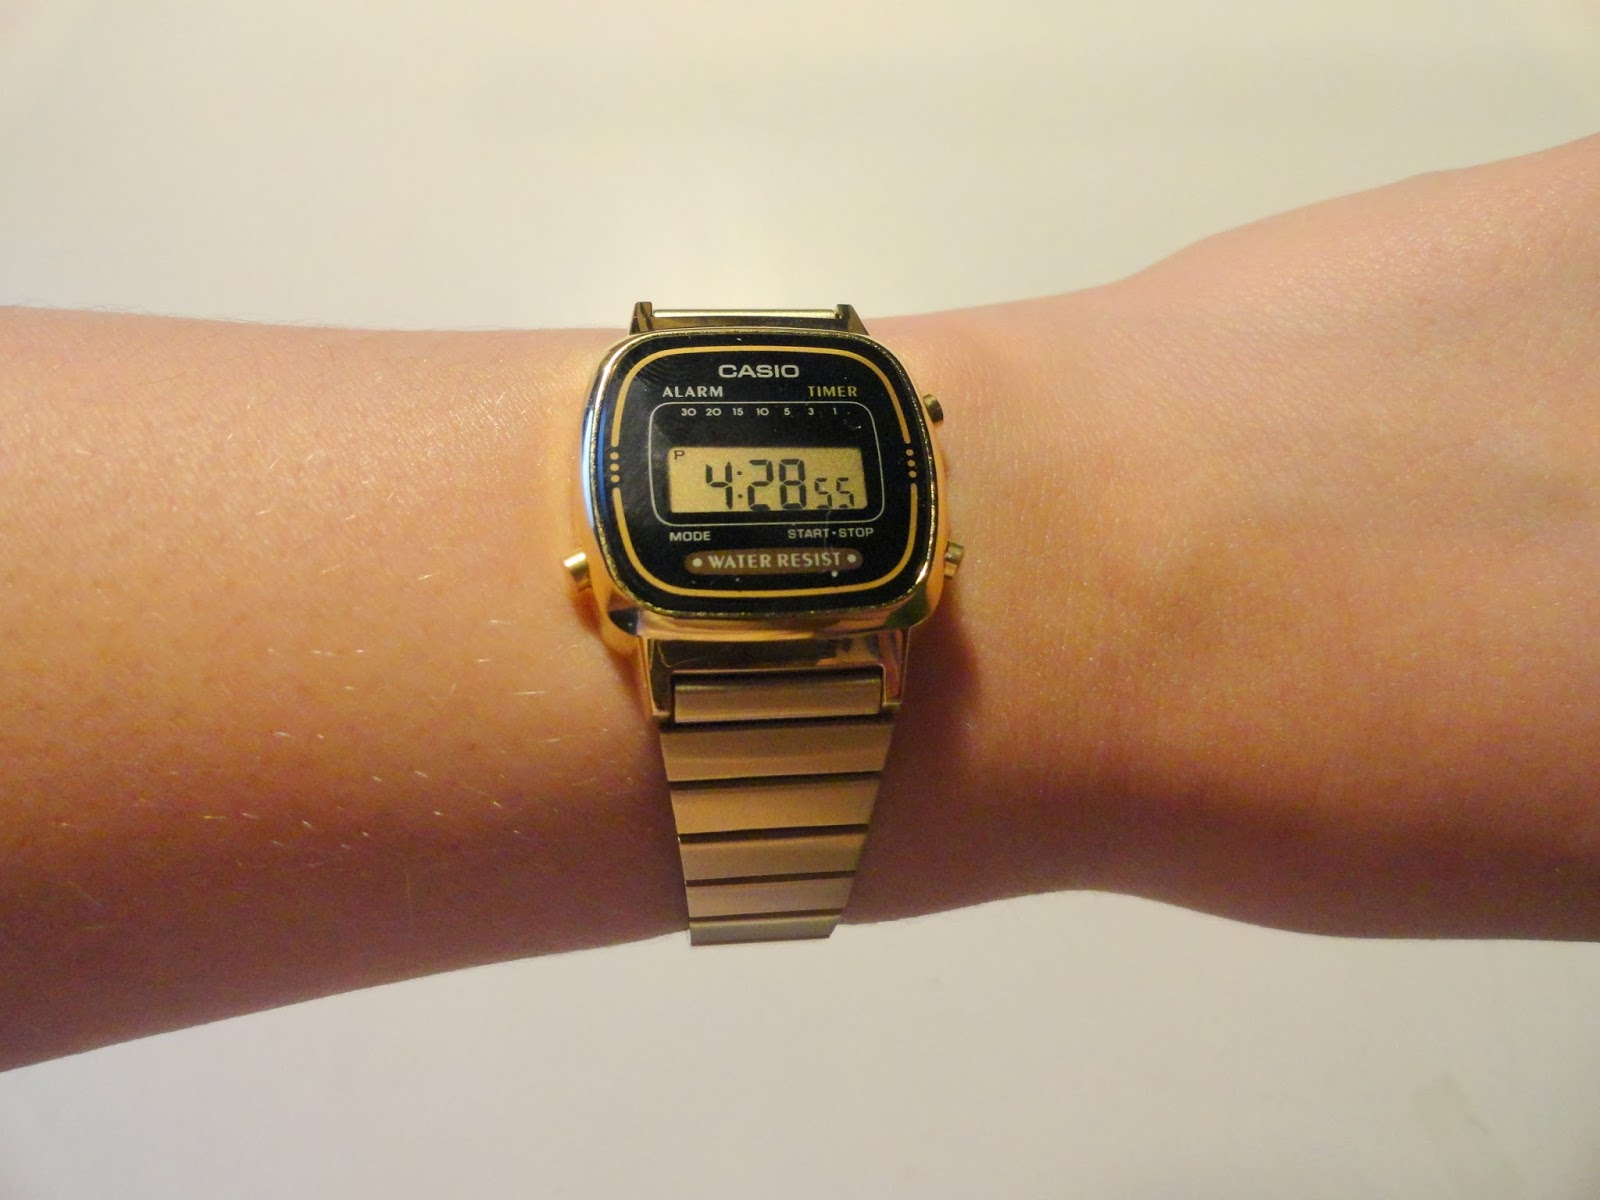 Clothes & Dreams: Shoplog: Tangle Teezer, Casio and Barry M: Casio watch